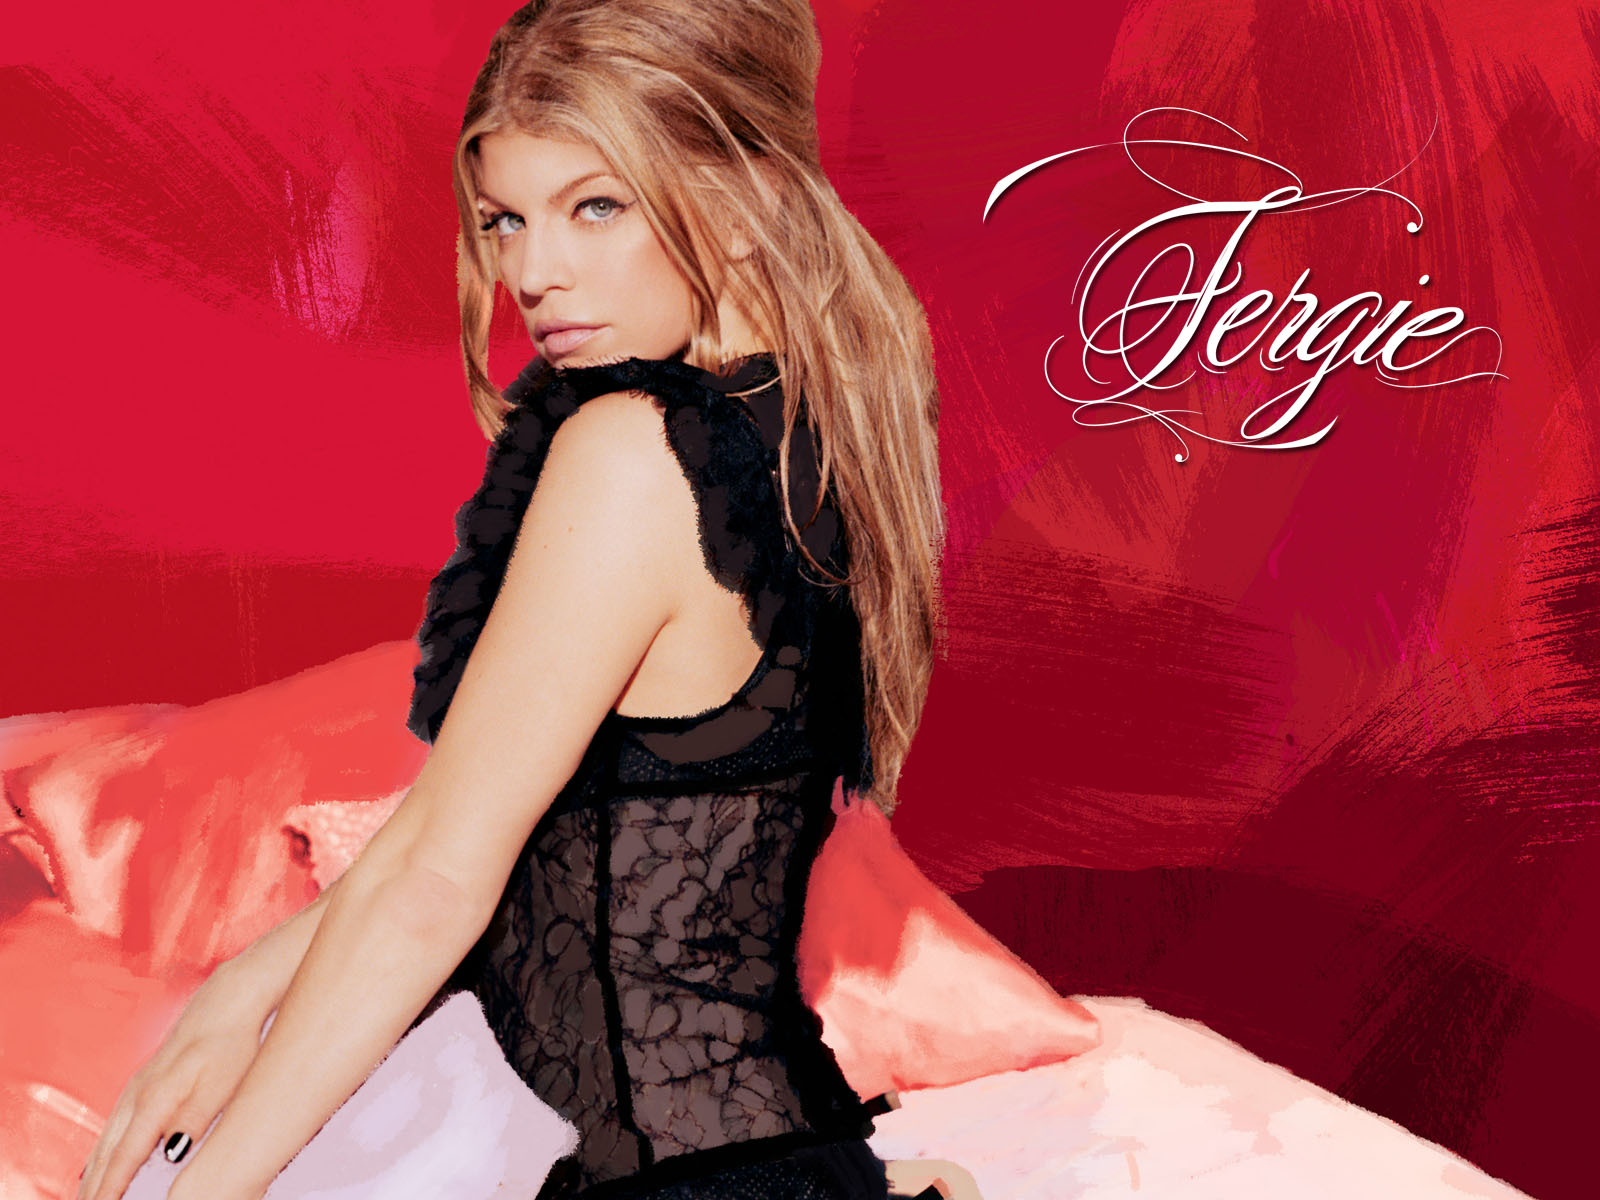 Break Up Wallpapers With Quotes Hd Chatter Busy Fergie Quotes